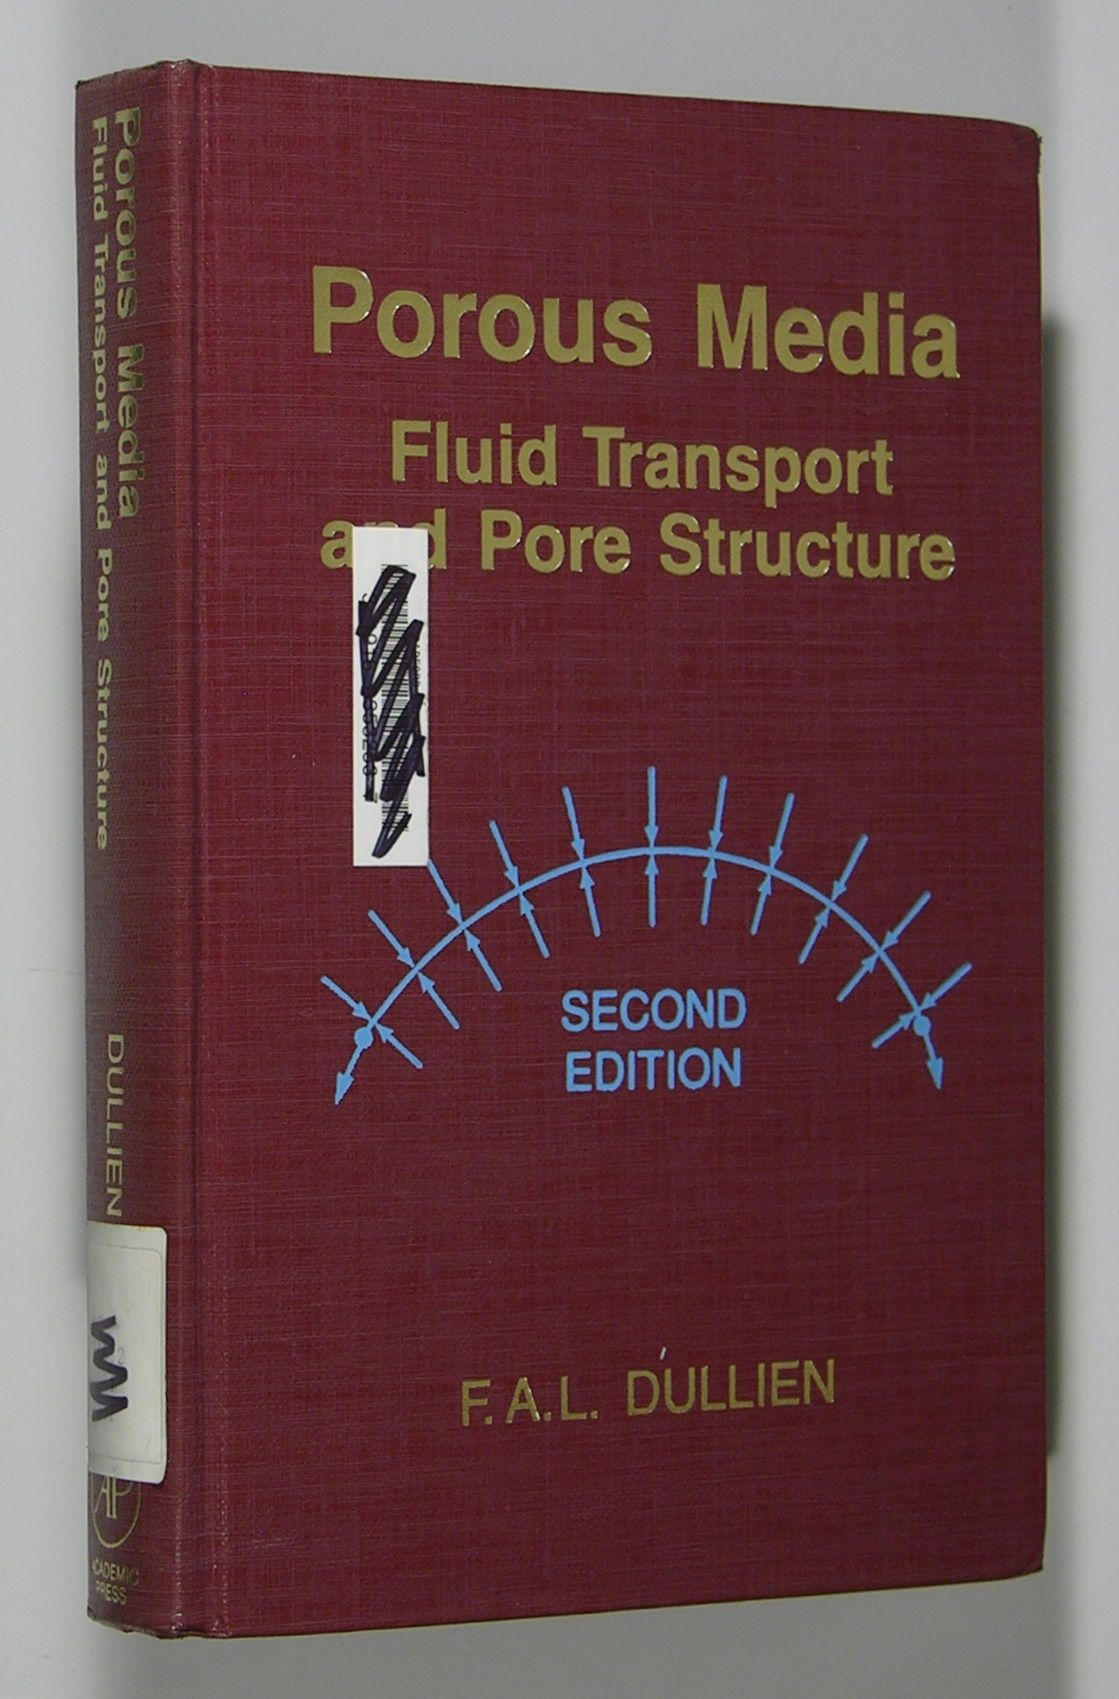 Porous Media - Fluid Transport and Pore Structure - 2nd edition by F. A. L.  Dullien - 1992